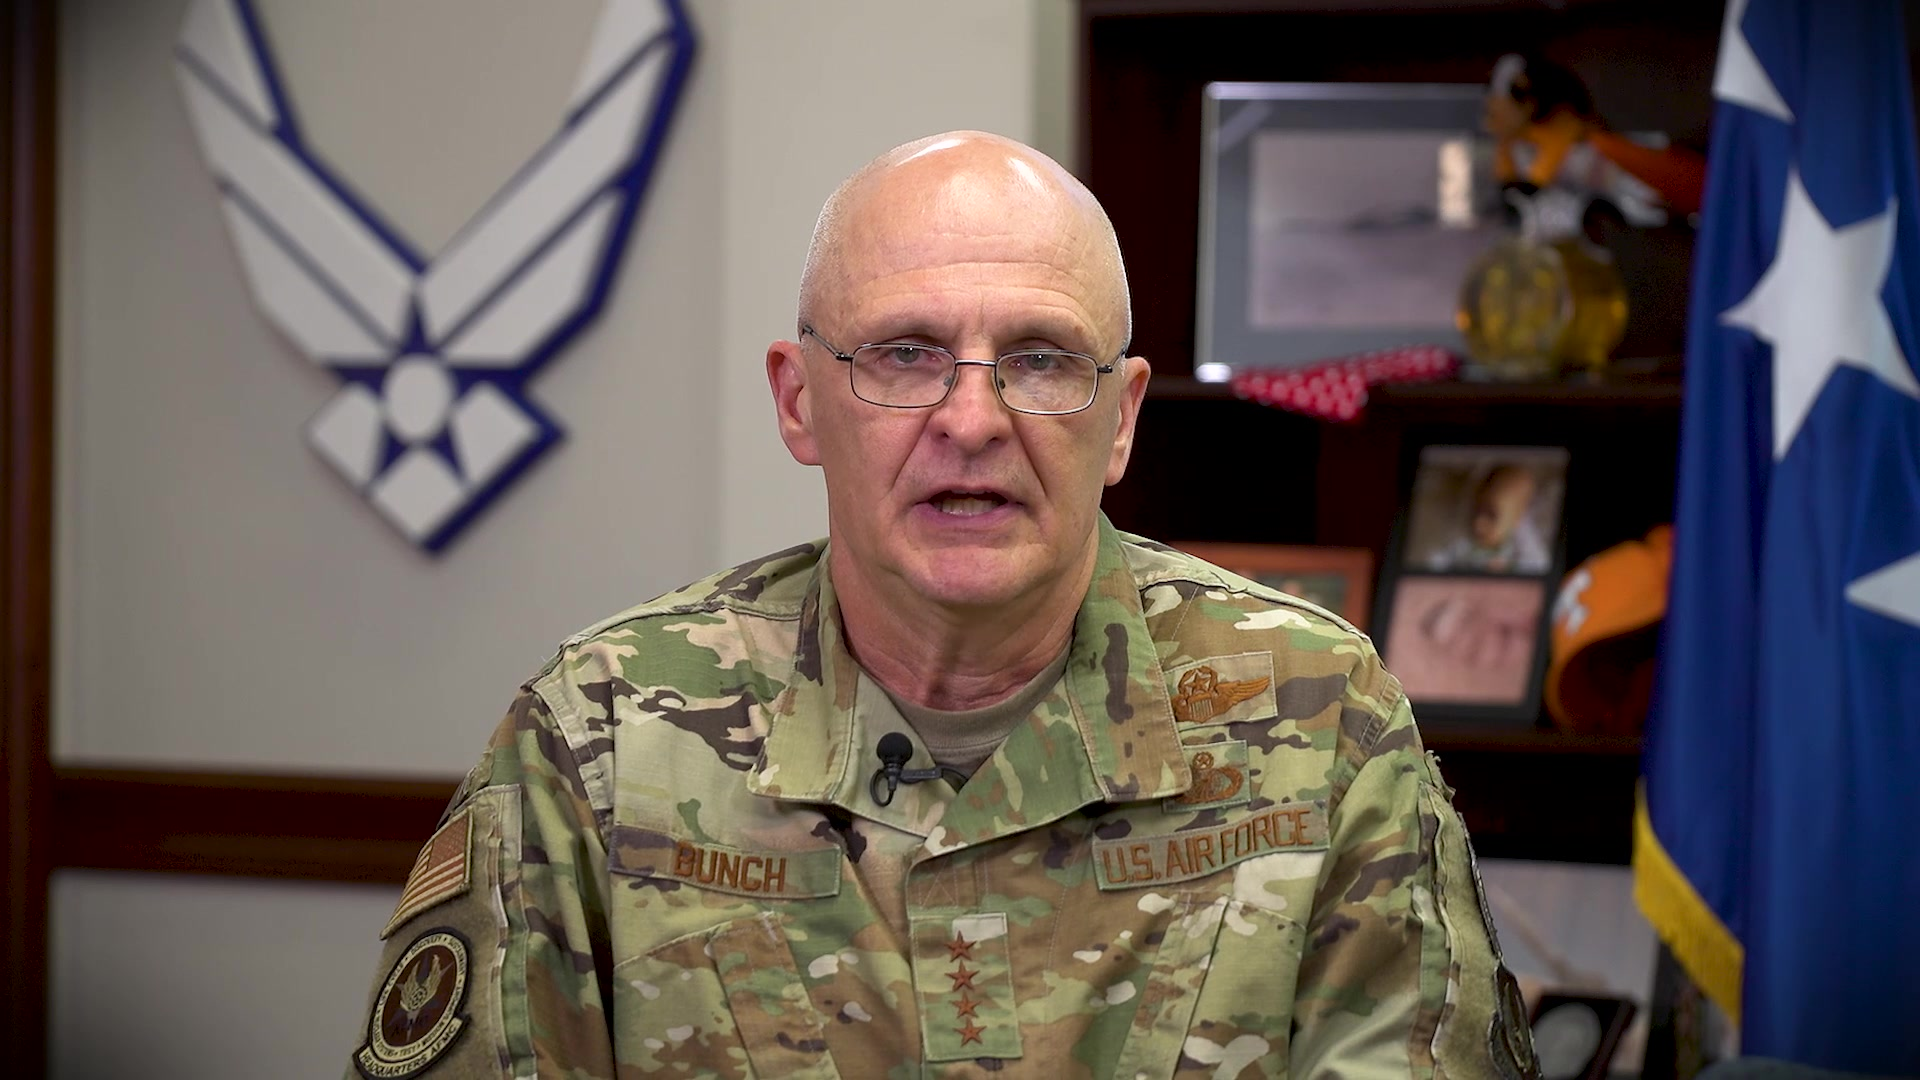 Gen. Arnold W. Bunch Jr., Air Force Materiel Command Commander, addresses the workforce on diversity and inclusion, Wright-Patterson Air Force Base, Ohio, June 10, 2020. (U.S. Air Force video by Christopher Decker)